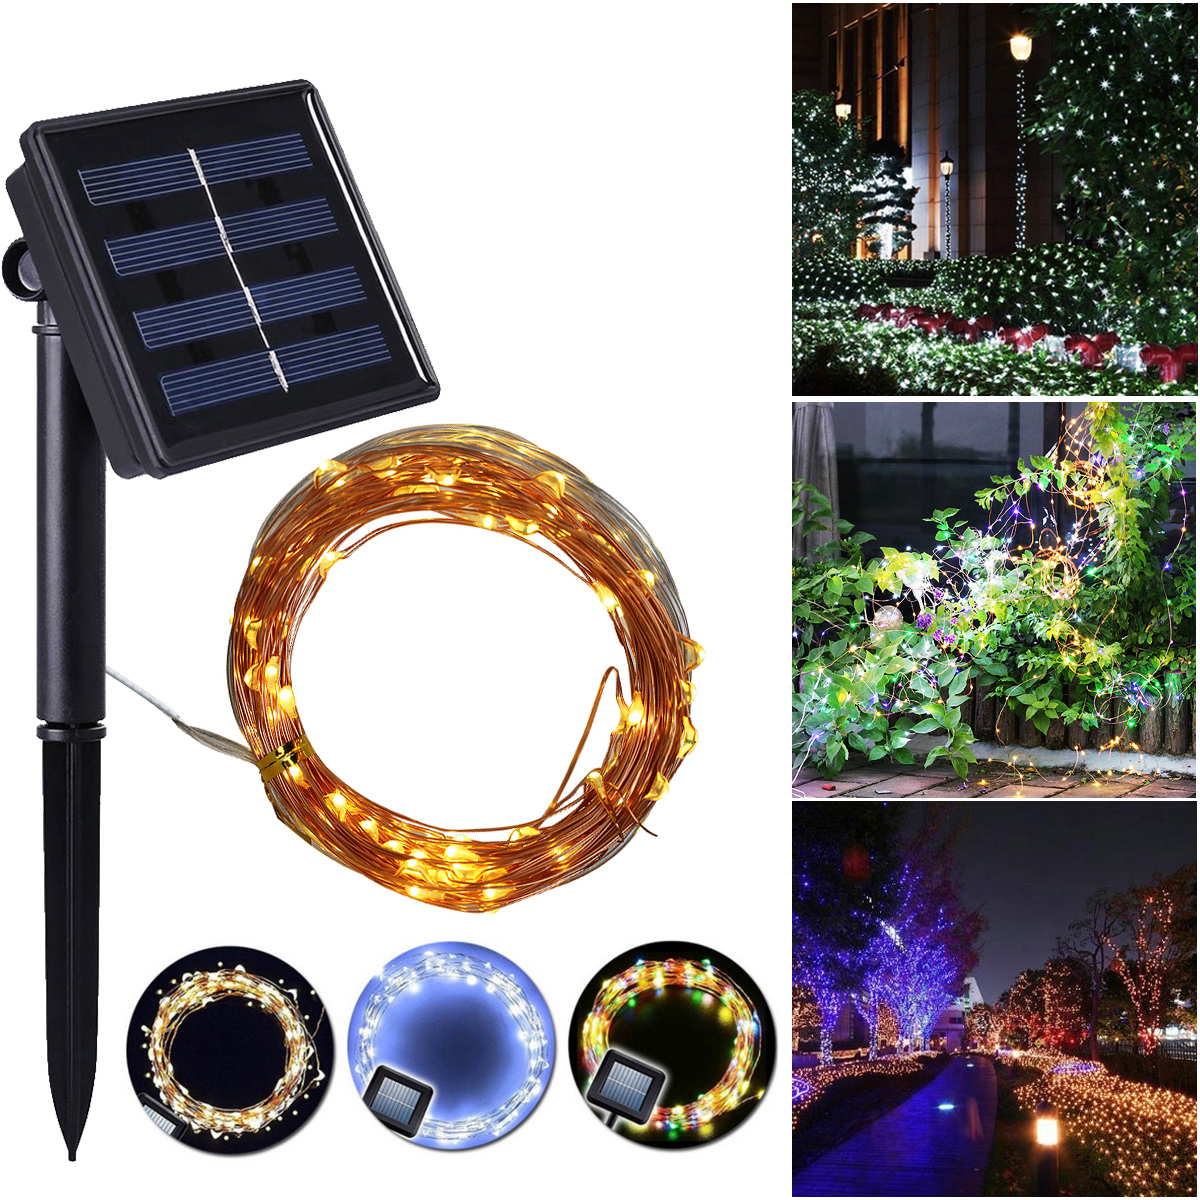 100/200 LED Solar Powered String Fairy Light Holiday Outdoor Waterproof Safe Copper Wire Lights For Festival Party Decoration